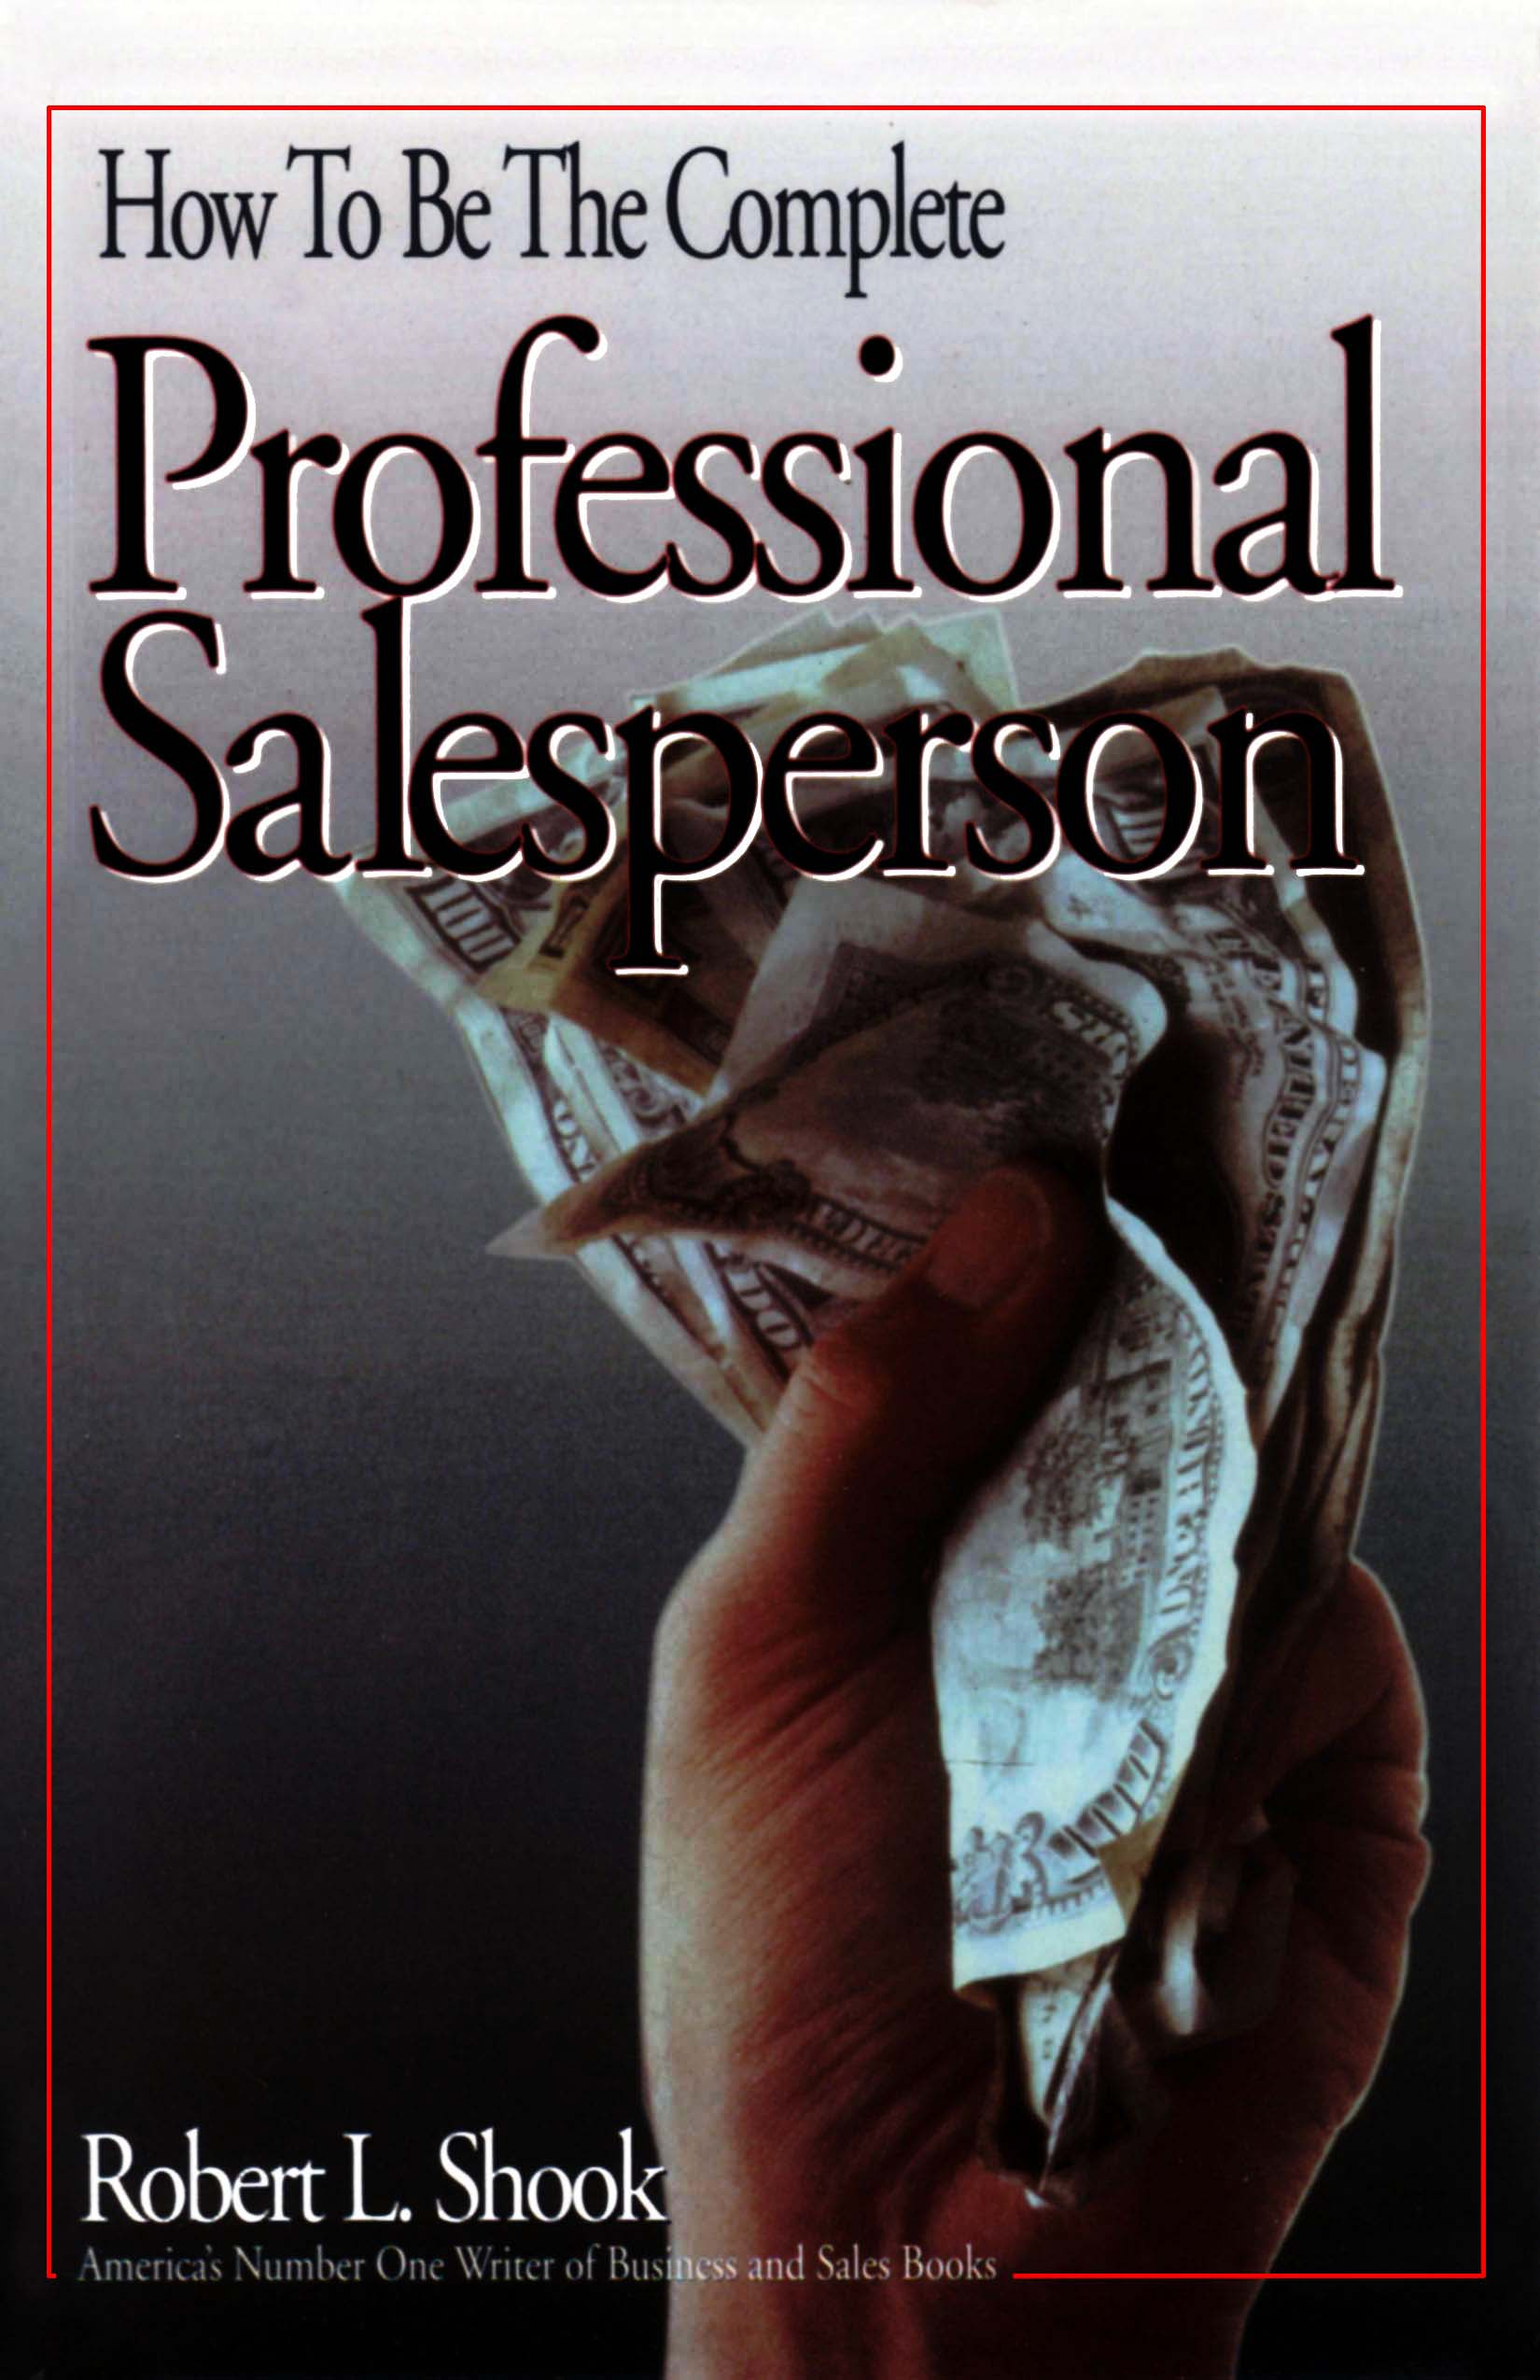 How to Be The Complete Professional Salesperson